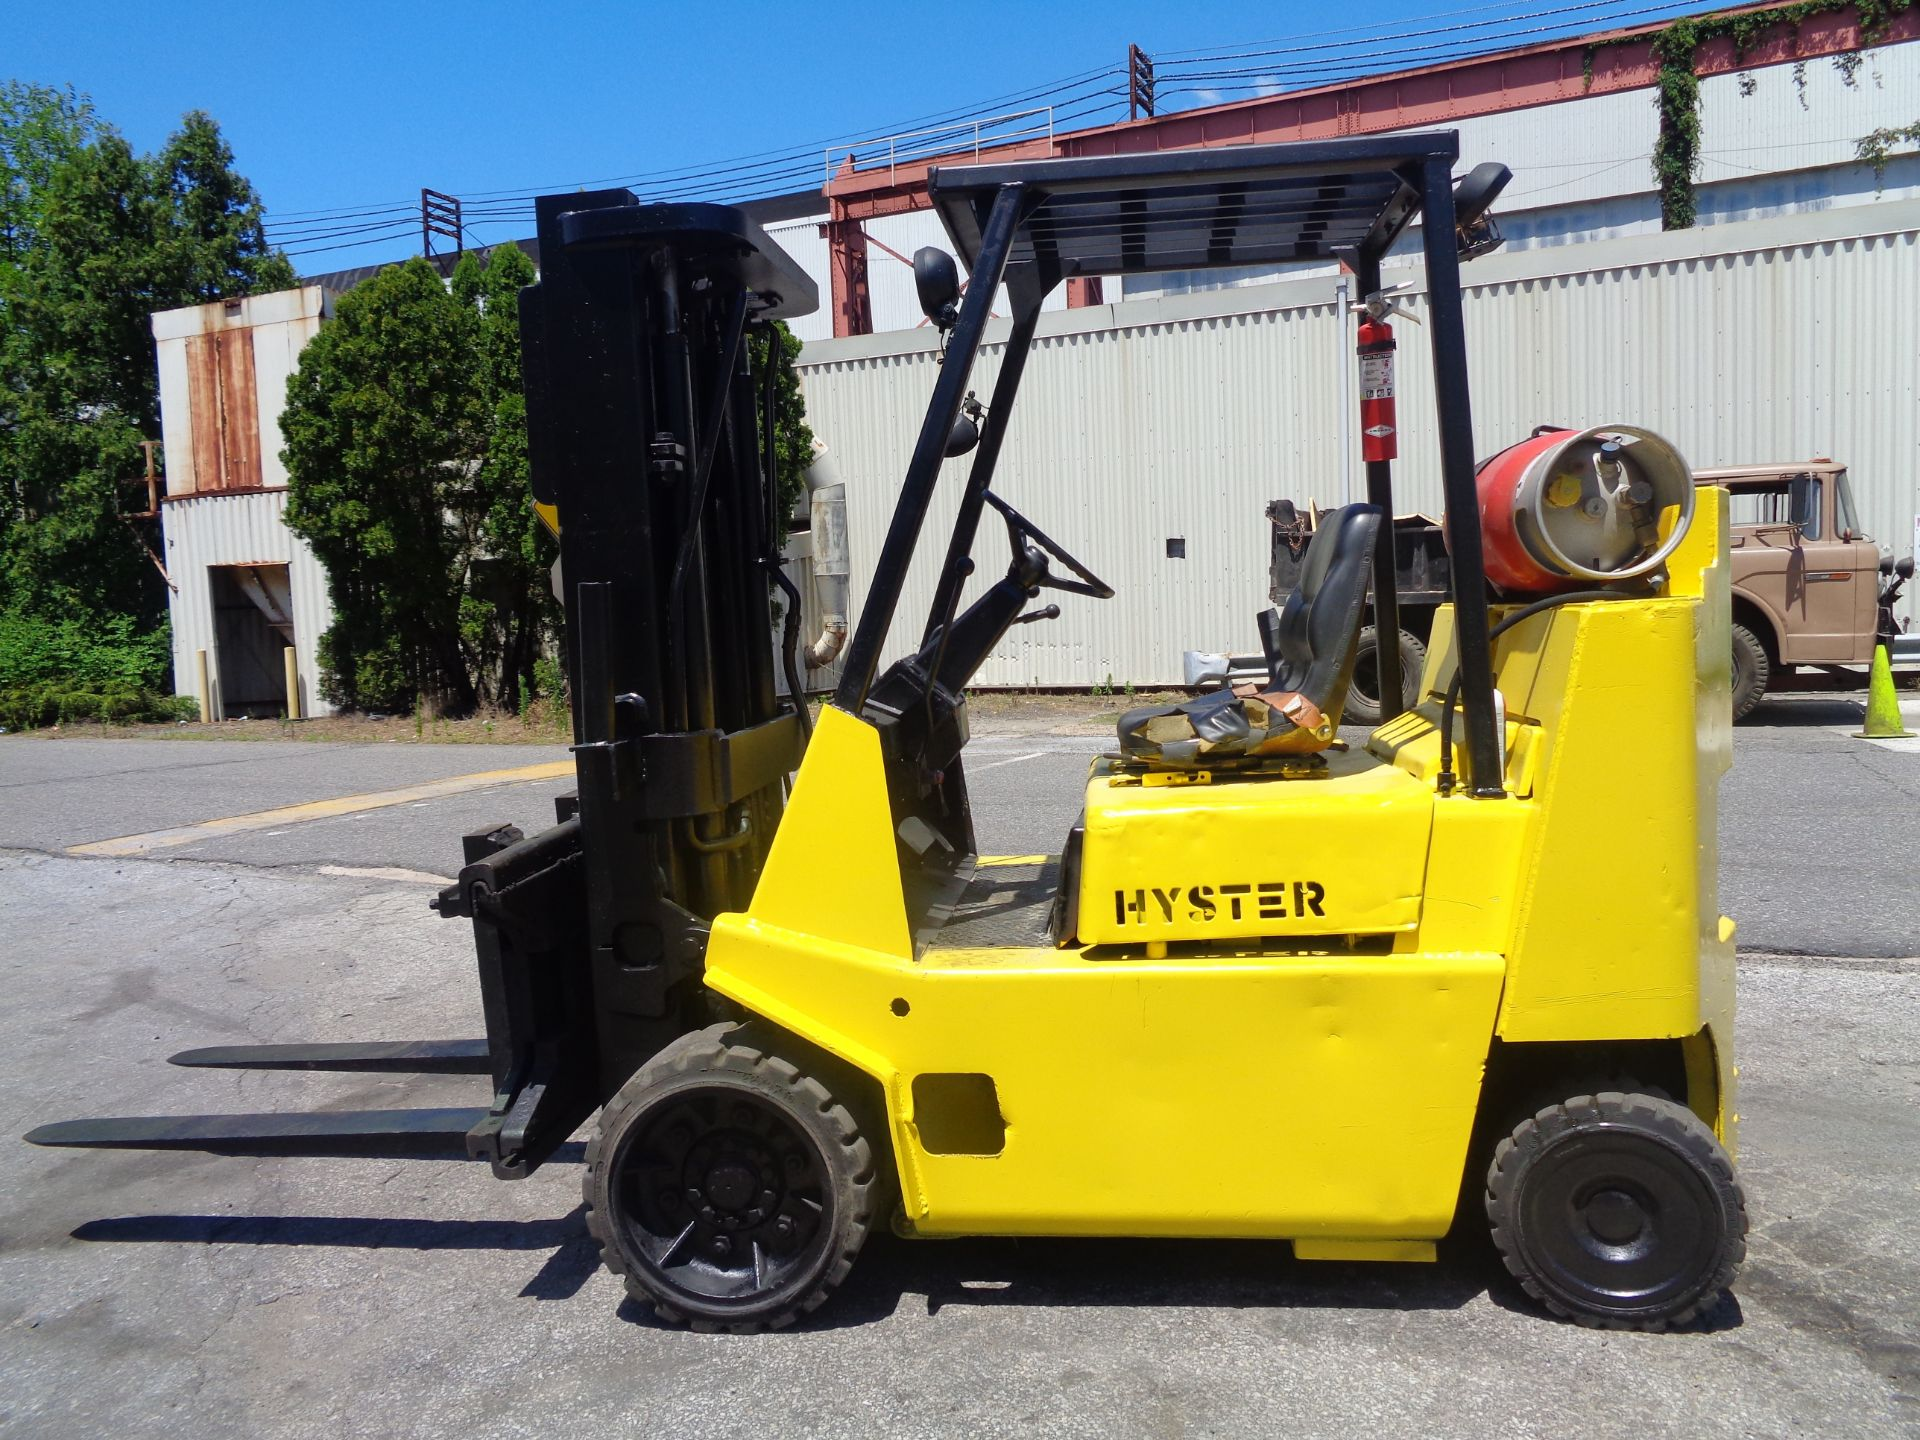 Hyster S80XL 8,000 lbs Forklift